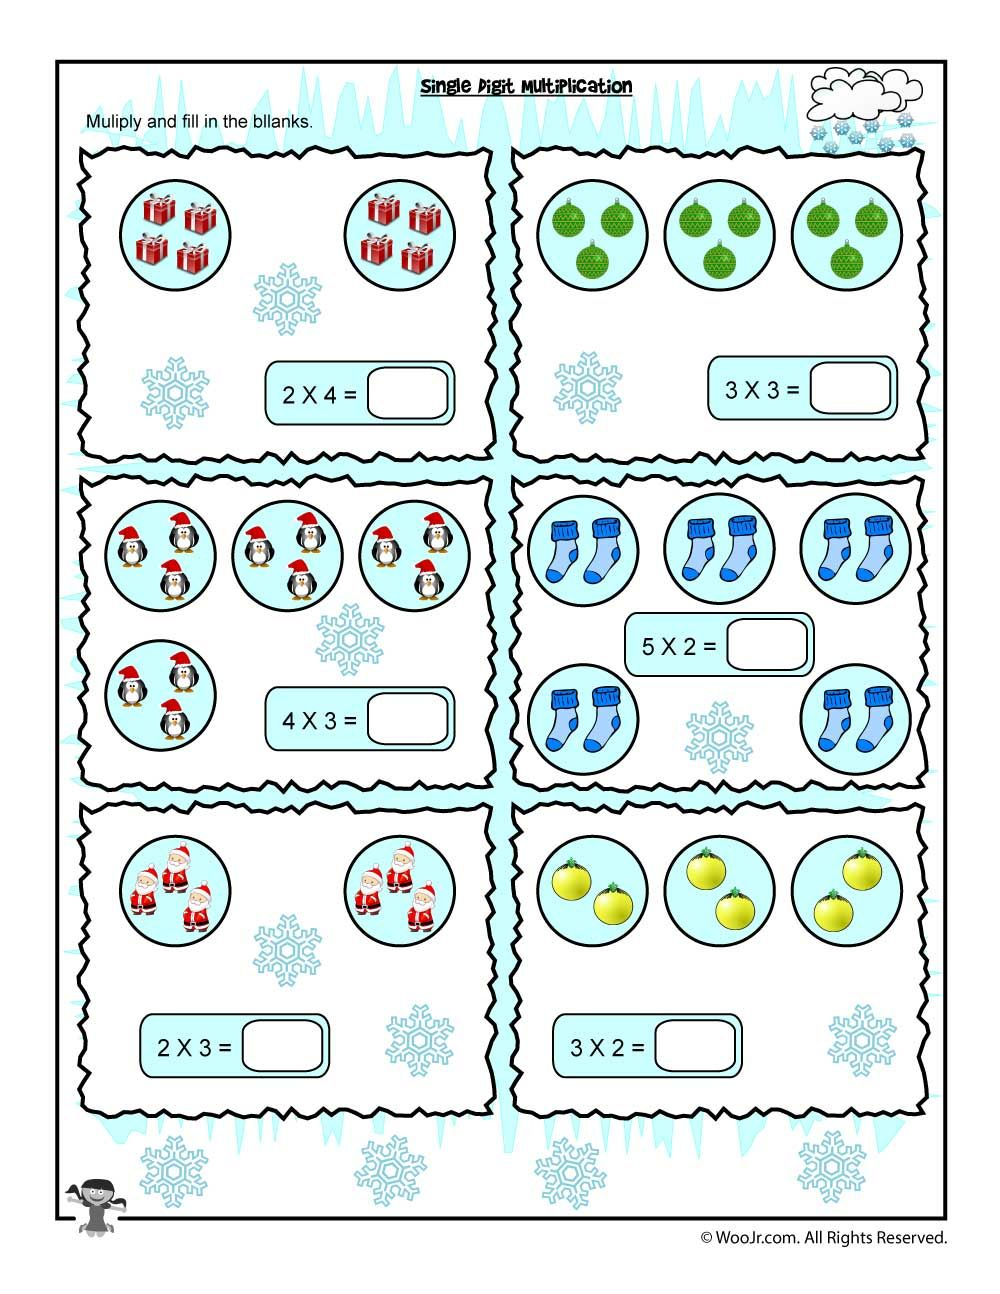 Single Digit Visual Counting Multiplication Worksheet | Math ...